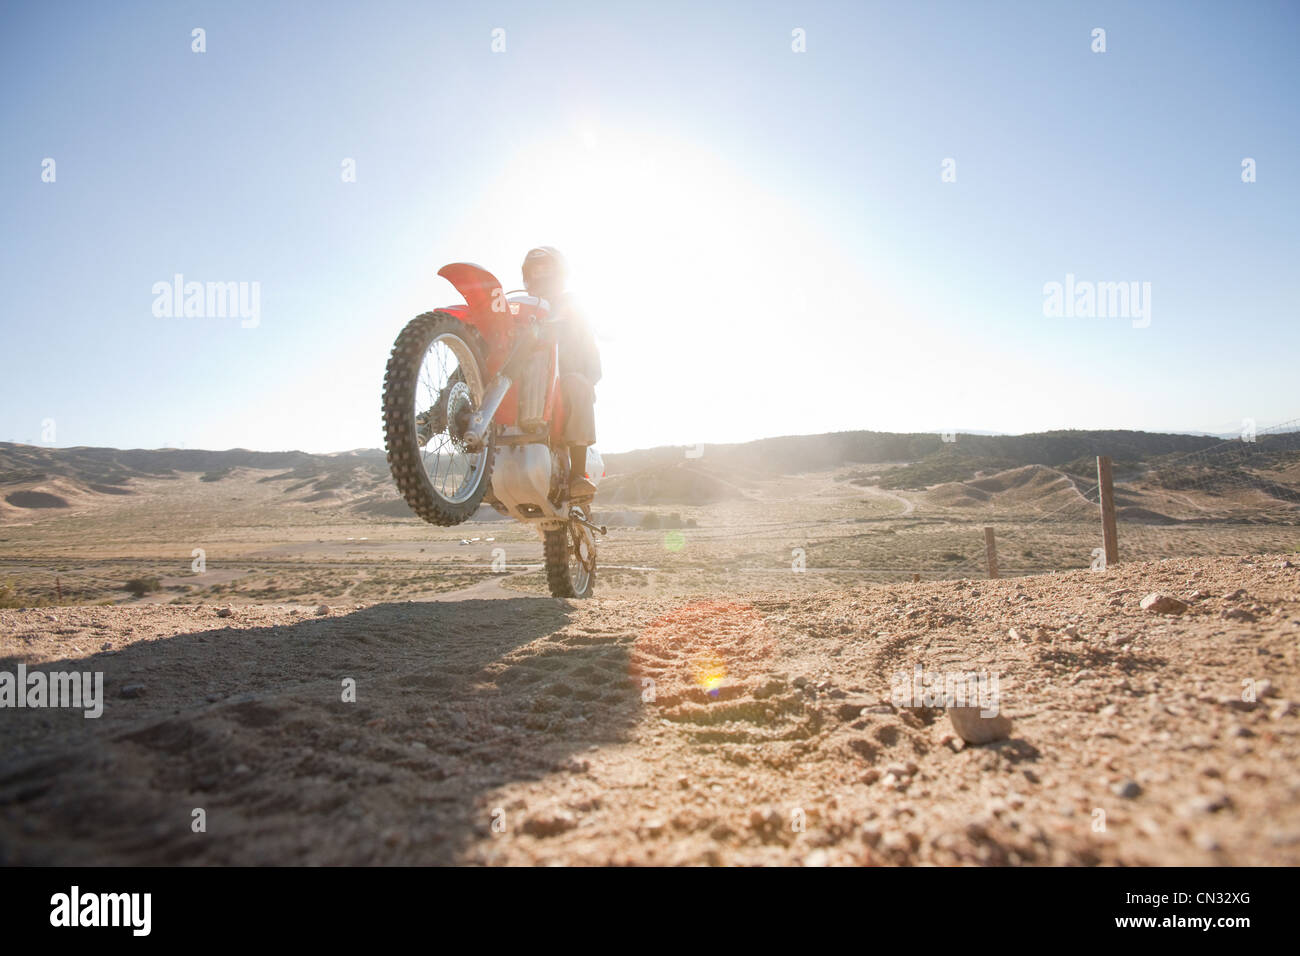 Man doing wheelie on dirt bike on dirt track - Stock Image